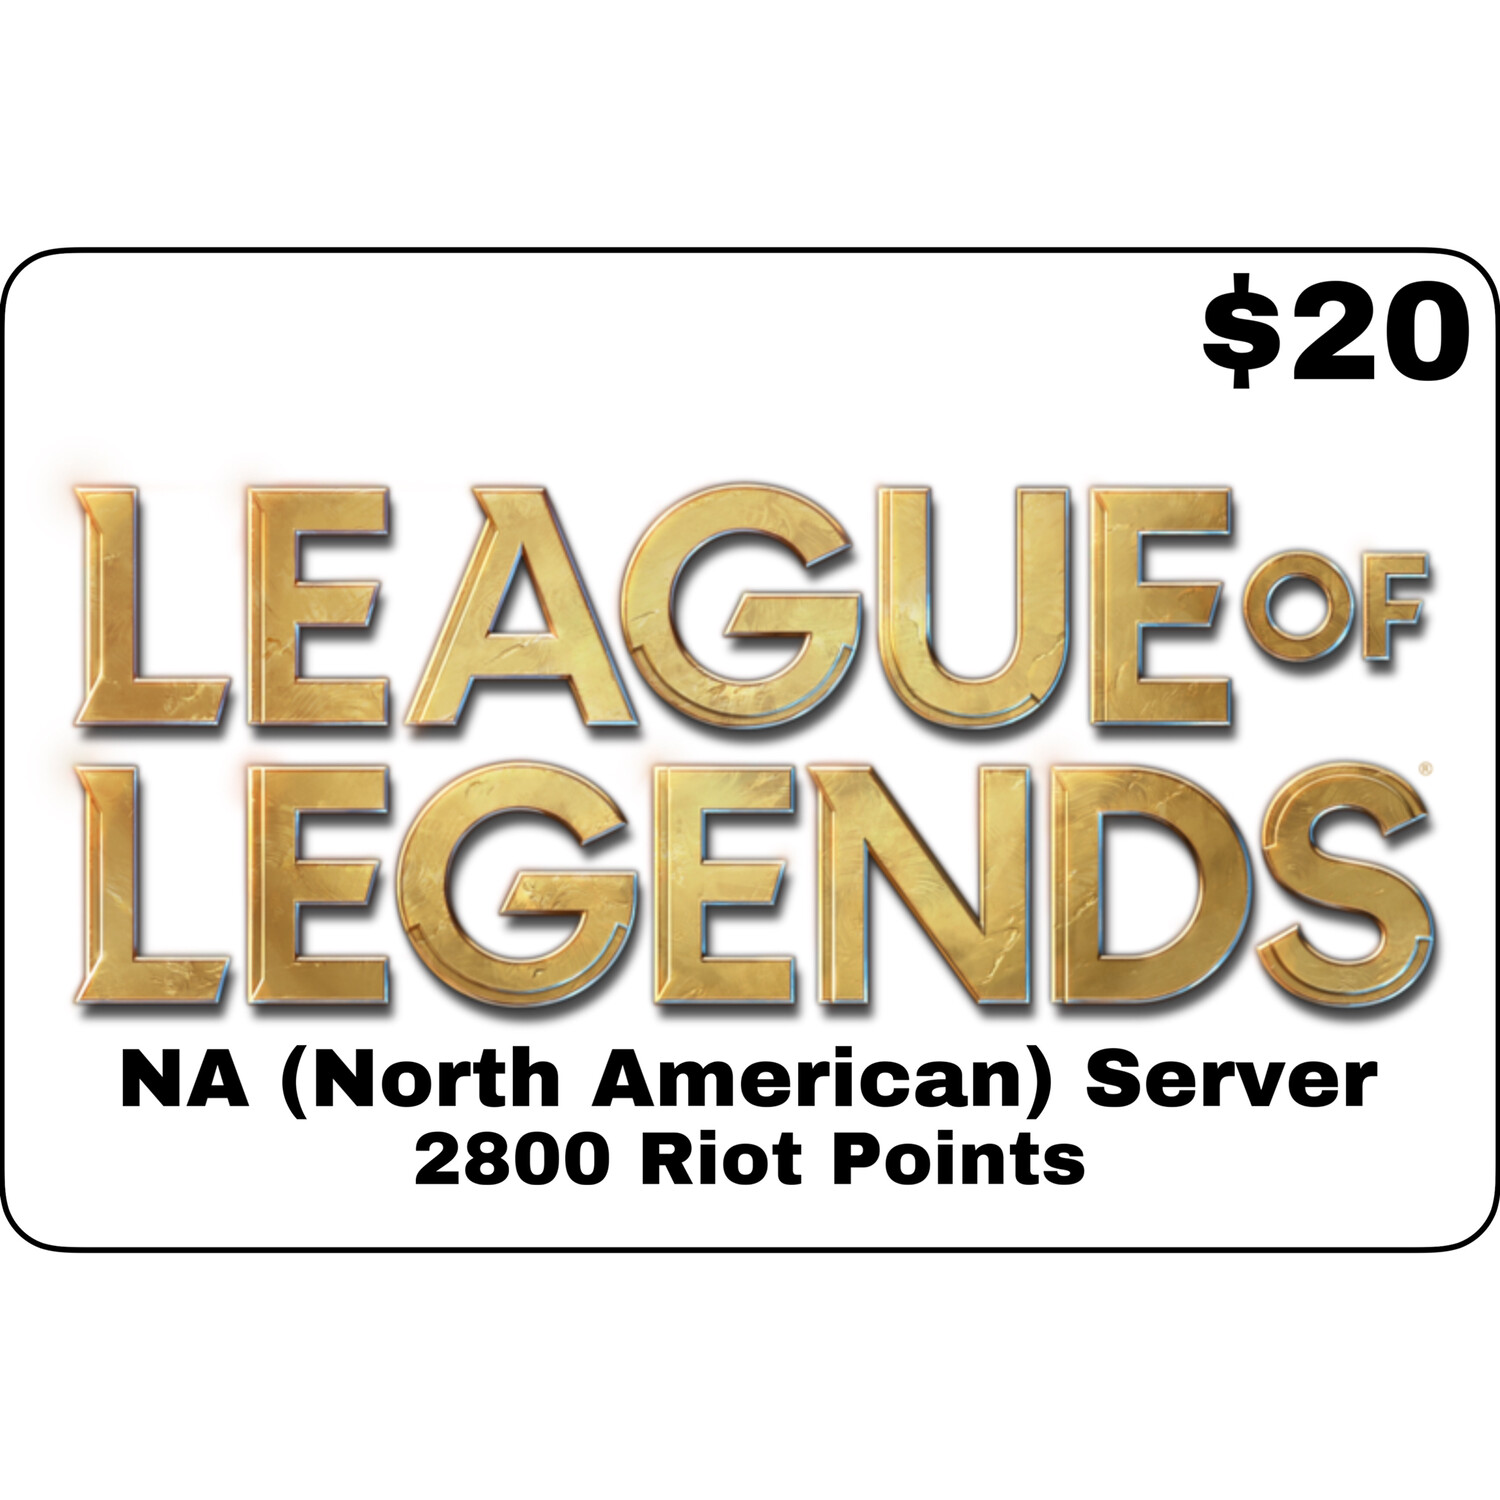 League of Legends USD $20 NA Server 2800 Riot Points